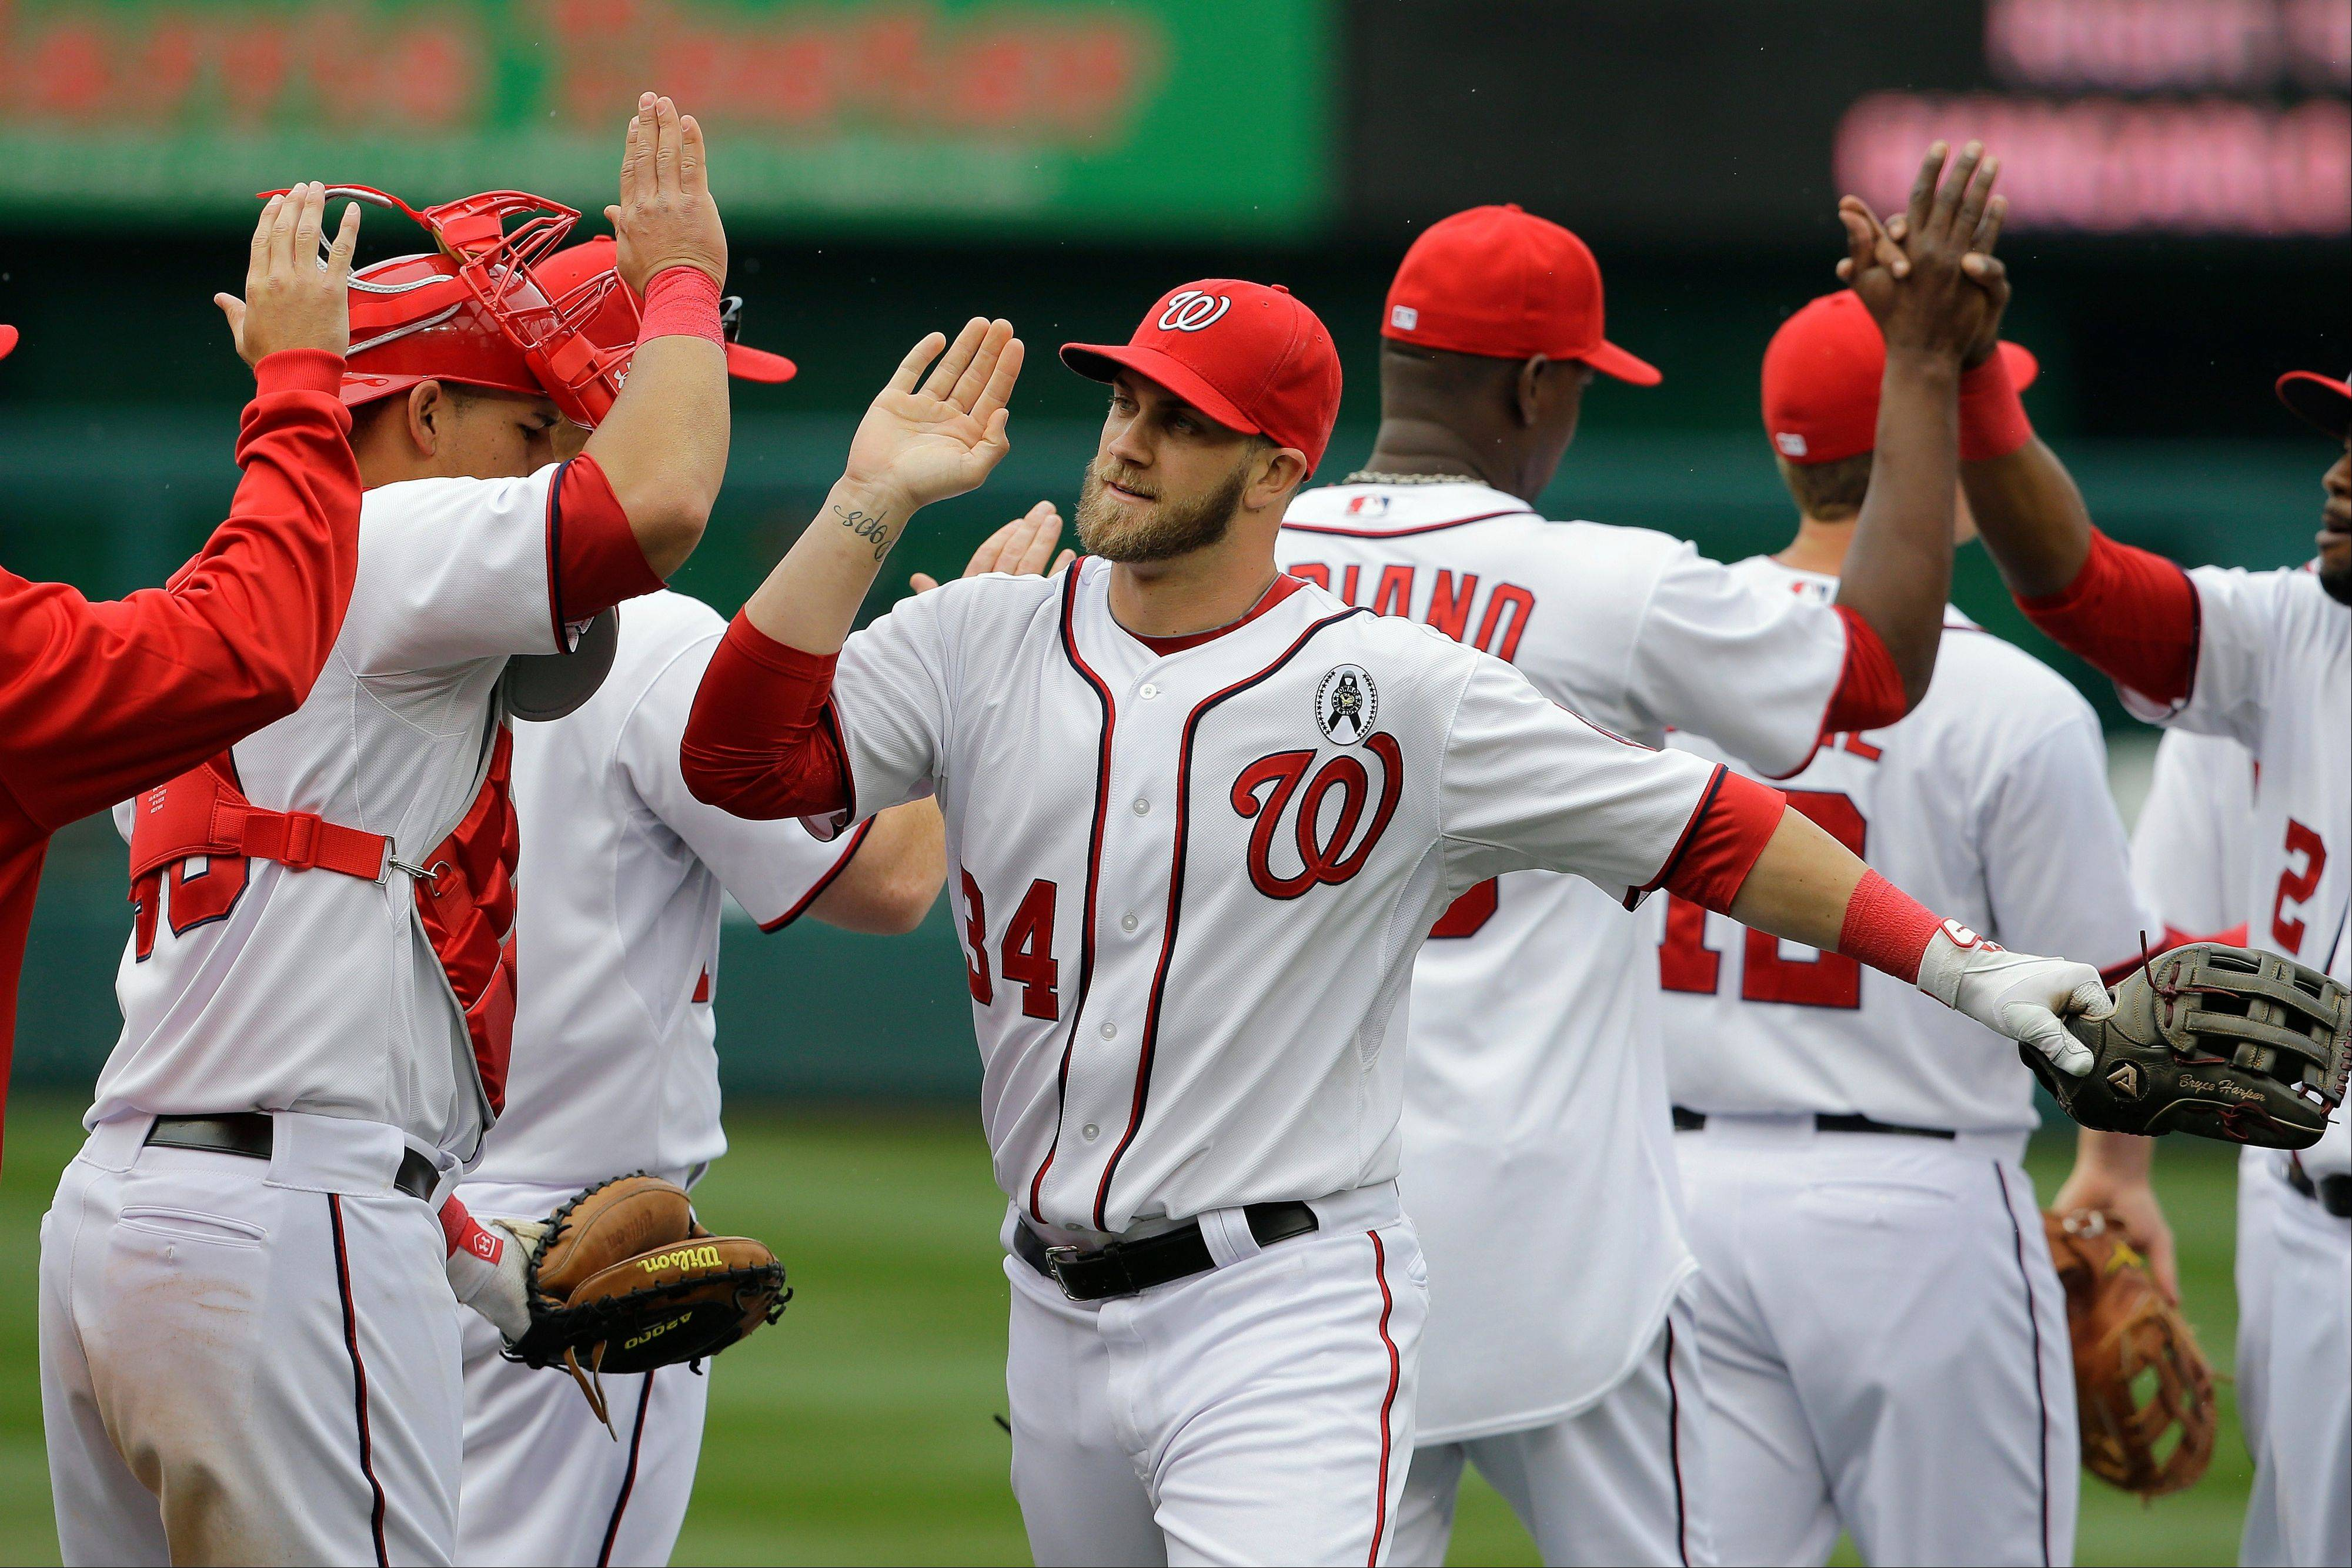 Nationals left fielder Bryce Harper (34) congratulates his teammates after a 2-0 victory over the Miami Marlins in the Opening Day game Monday in Washington.